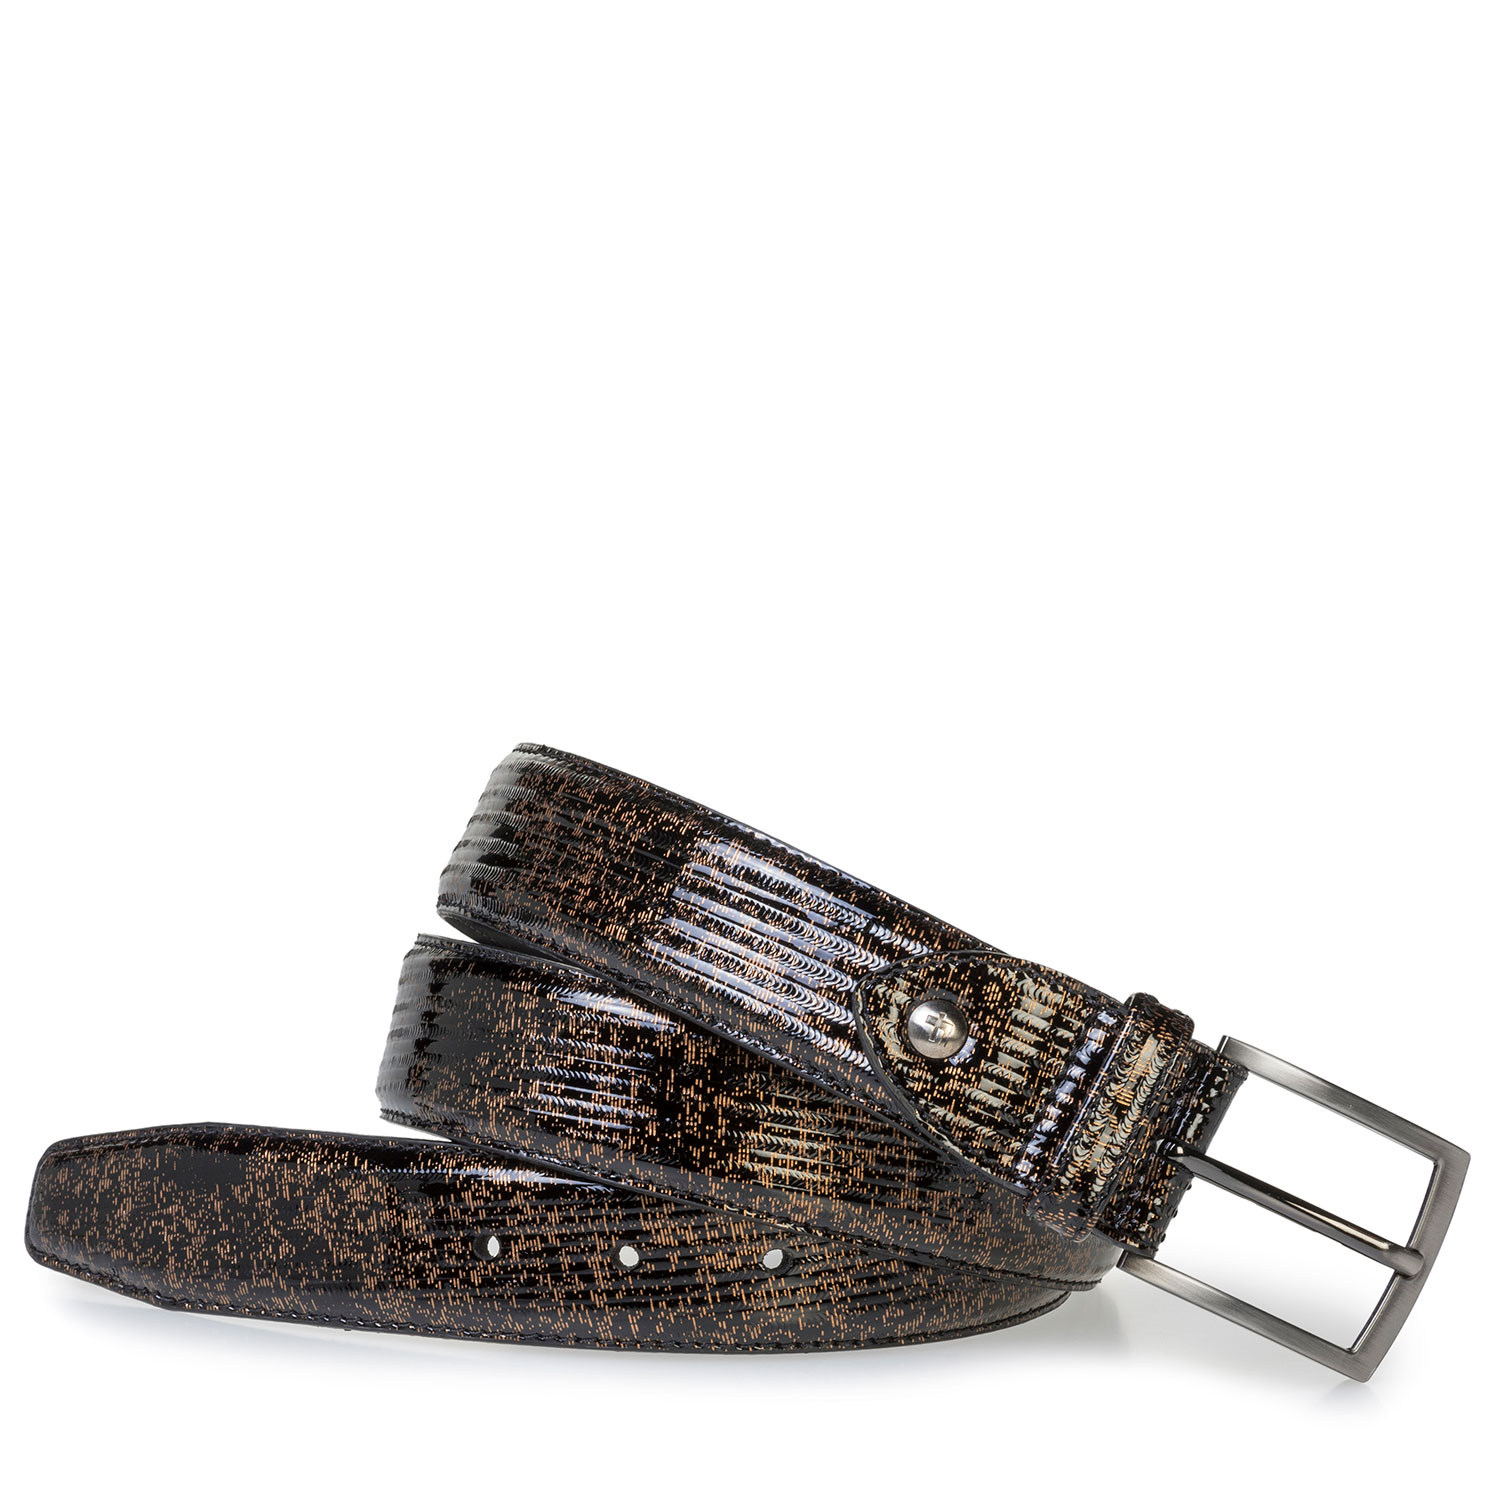 75203/01 - Brown patent leather belt with metallic print